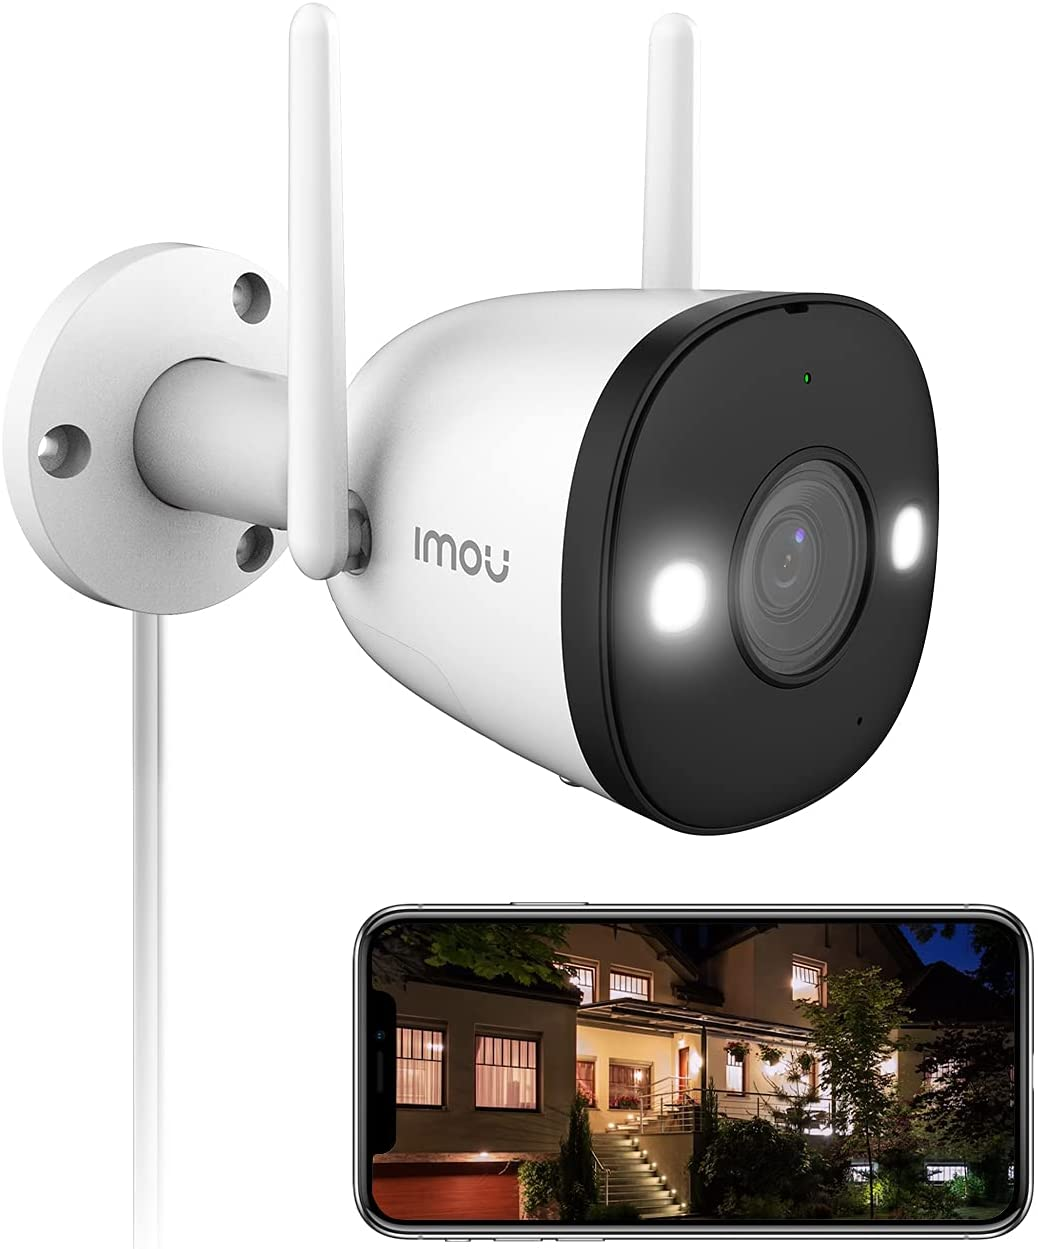 2K Security Camera Outdoor Color Night Vision with Spotlight & Siren, 2.4G WiFi Camera 4MP for Home Security, IP67 Wireless Camera with Human Detection, 2-Way Audio, Ethernet Port, SD Card Slot